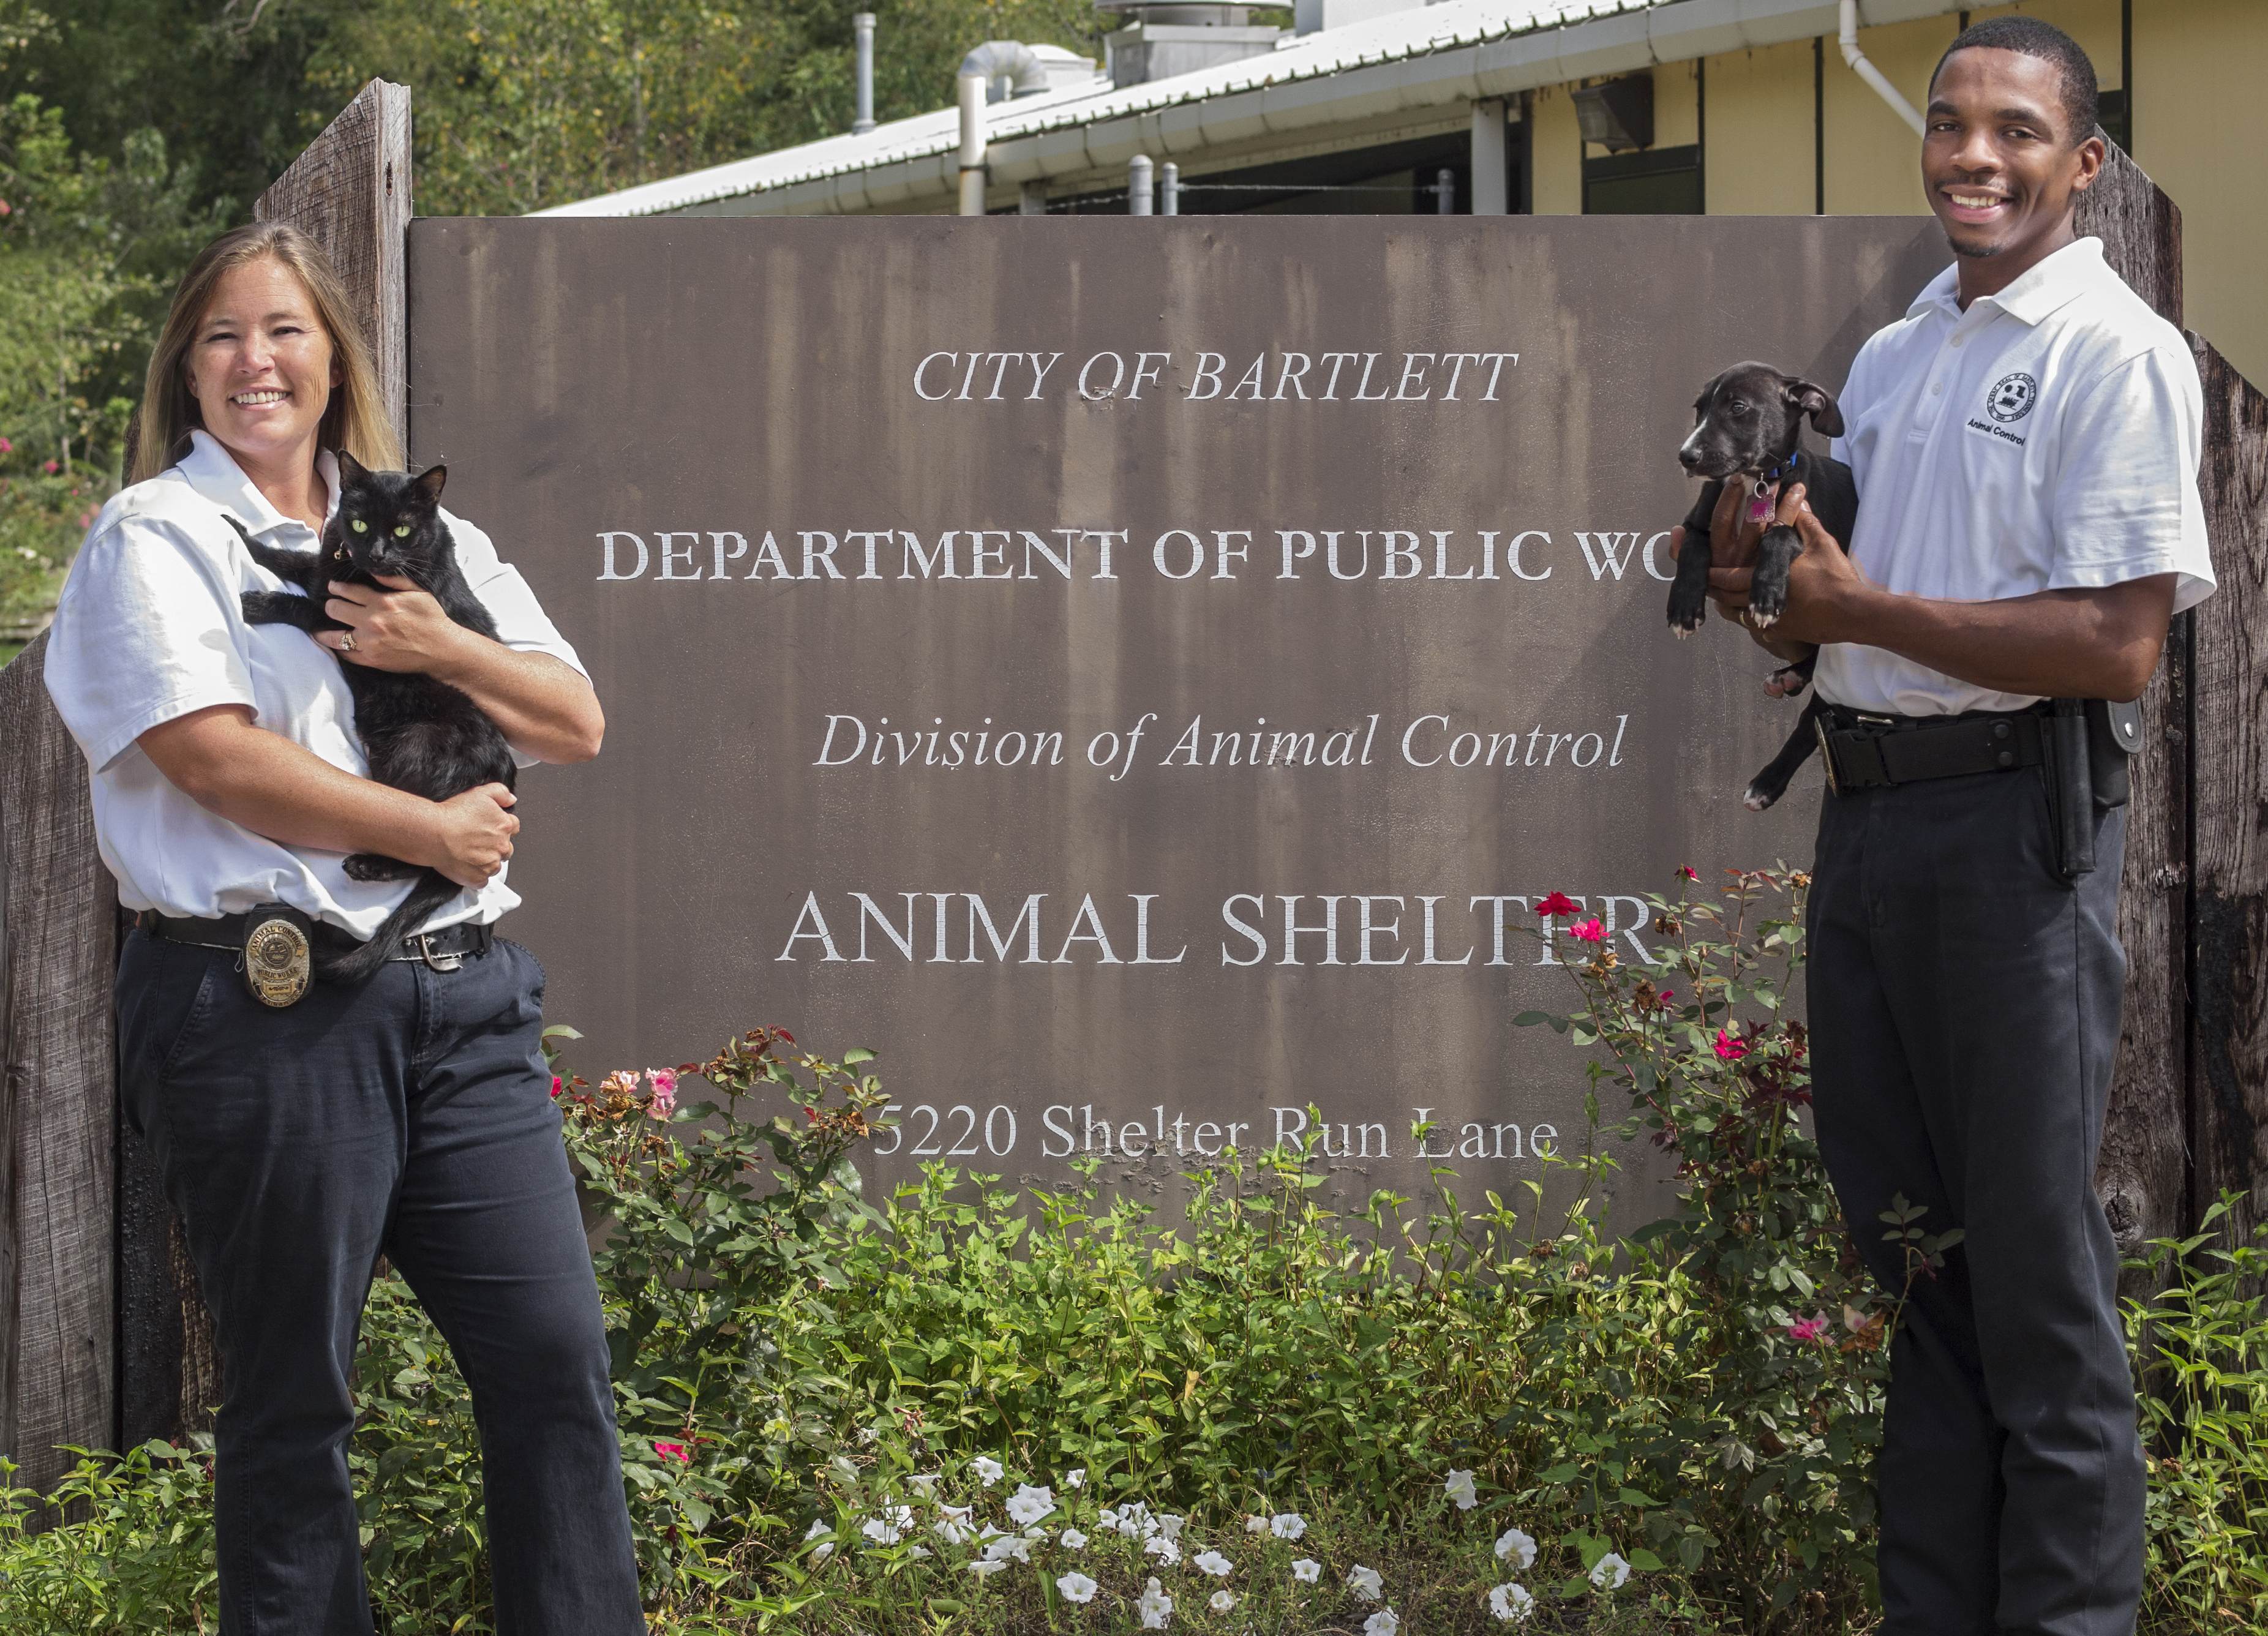 Two Animal Control Officers Holding a Cat and Dog